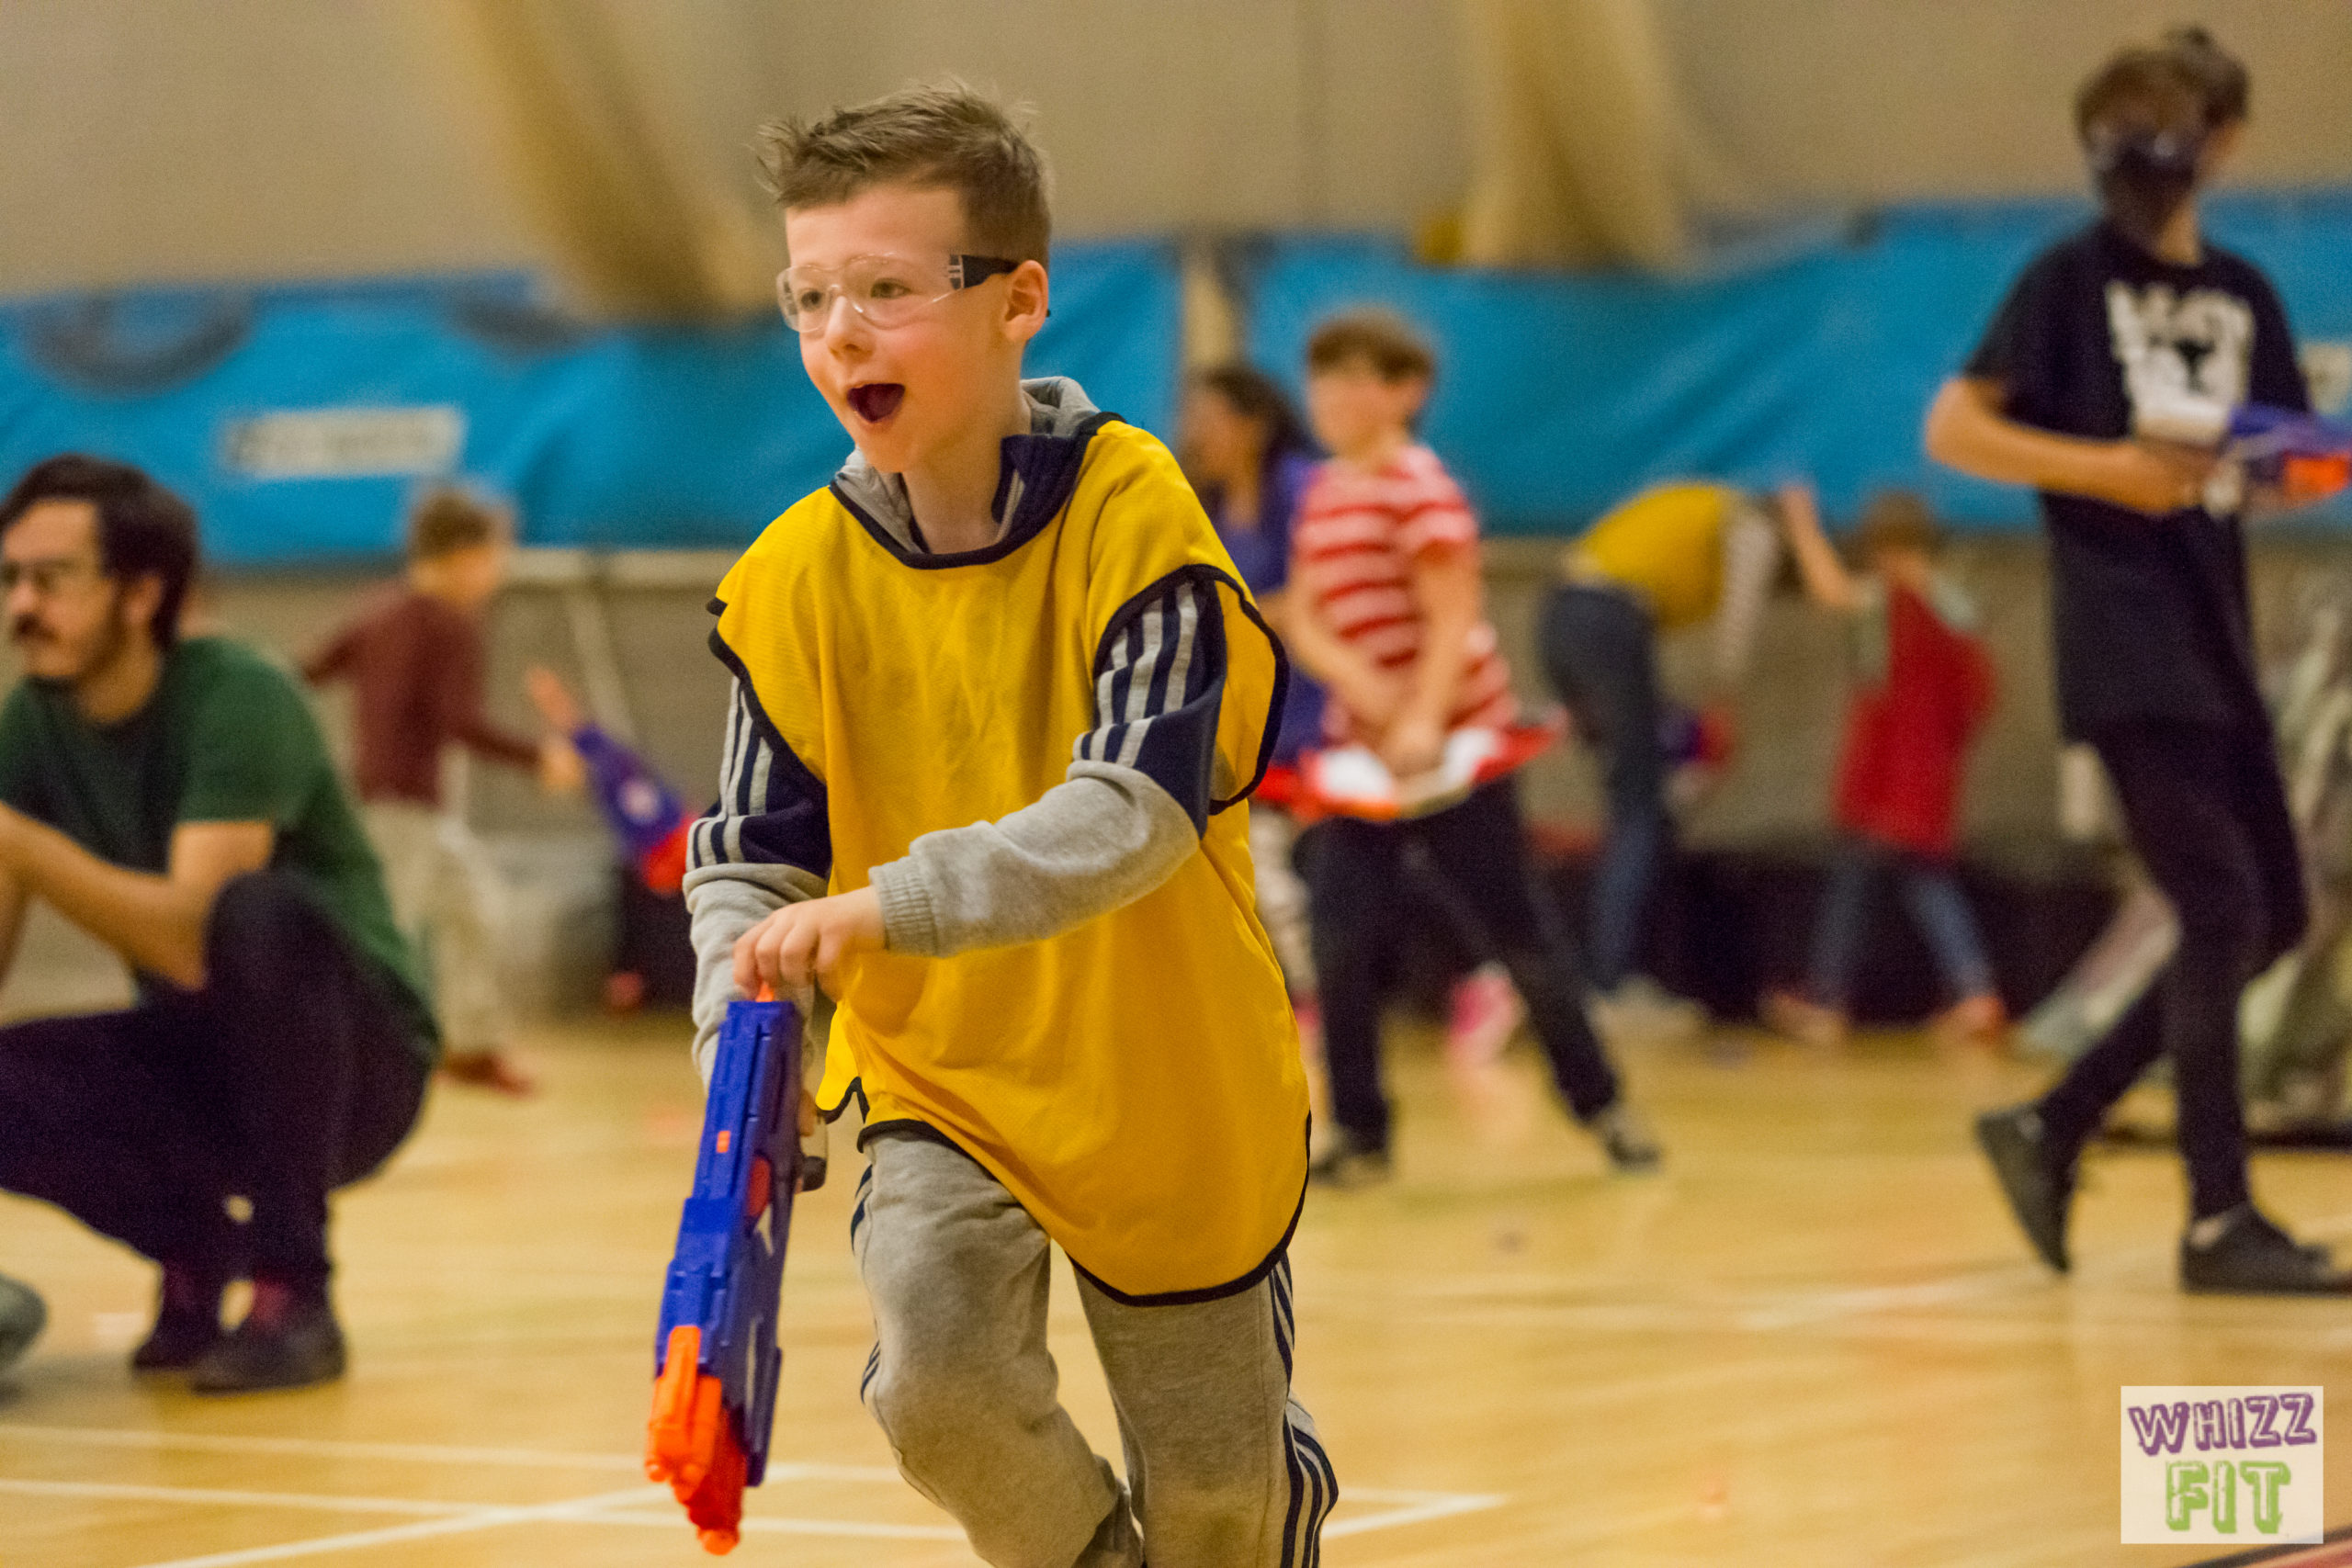 Nerf Wars Party at Waltham Abbey Leisure Centre